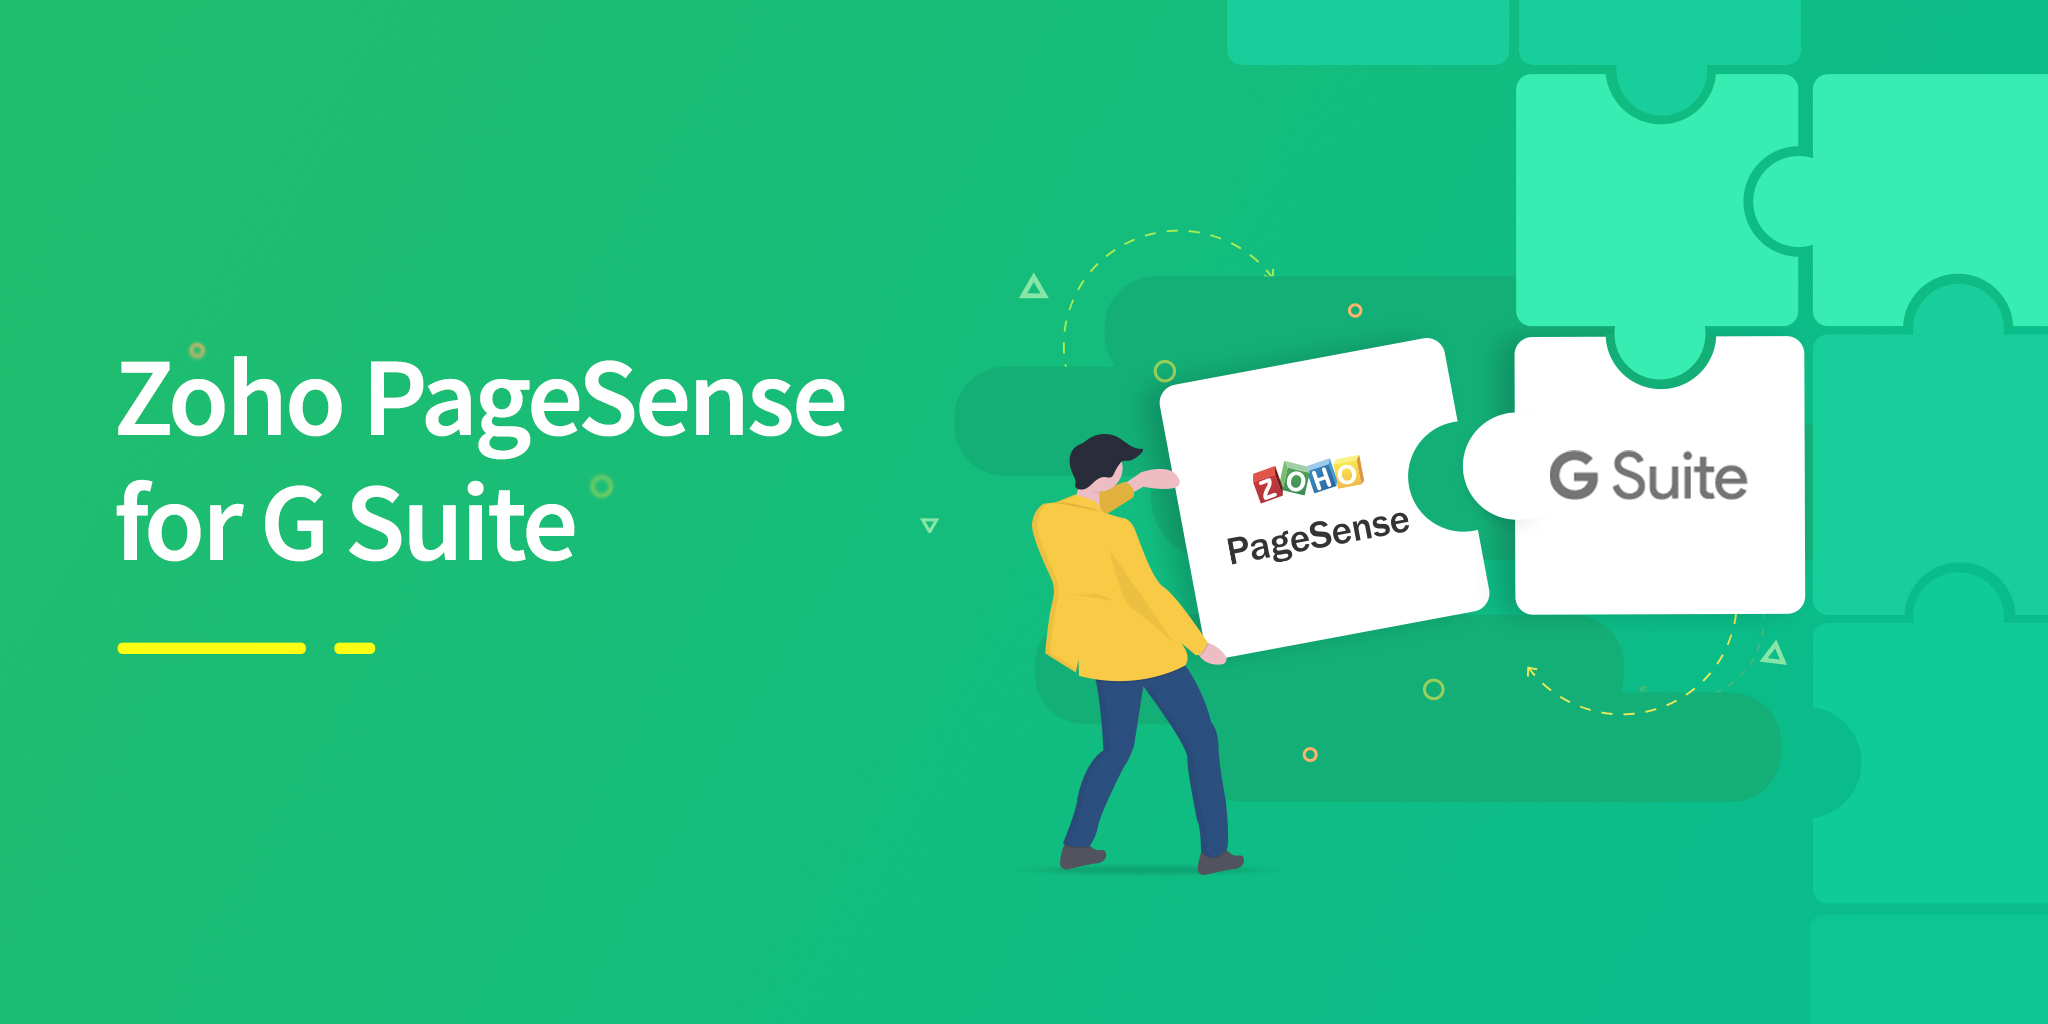 Announcing Zoho PageSense for G Suite